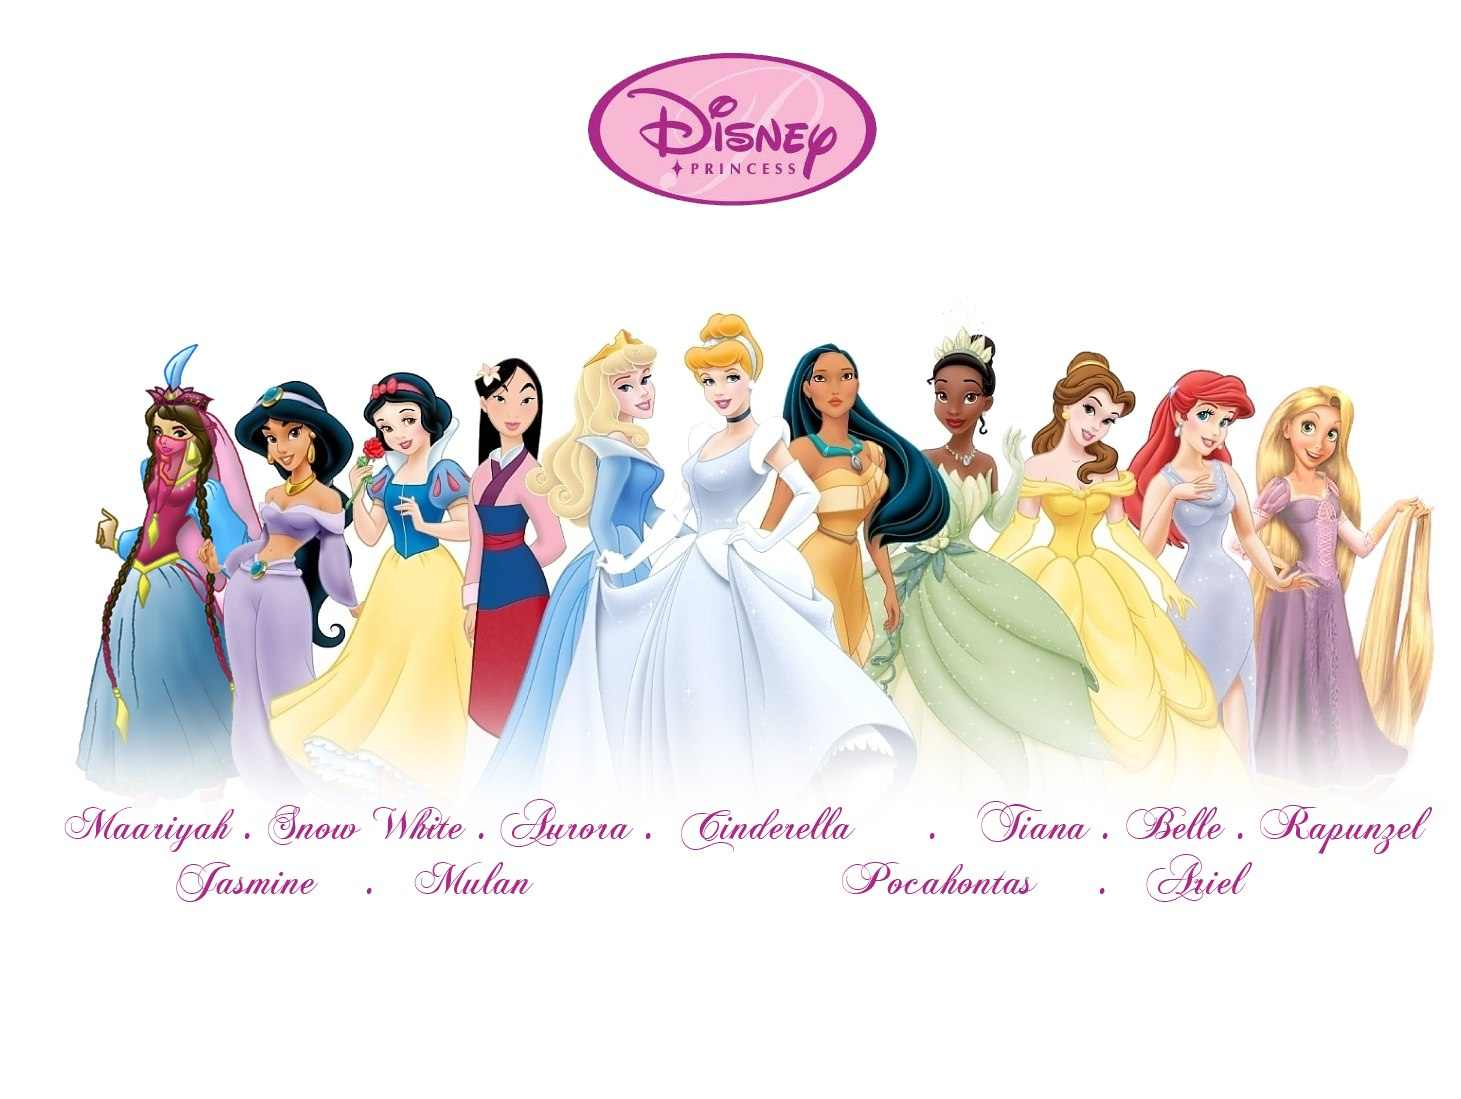 Disney Movie Princesses: May 2013